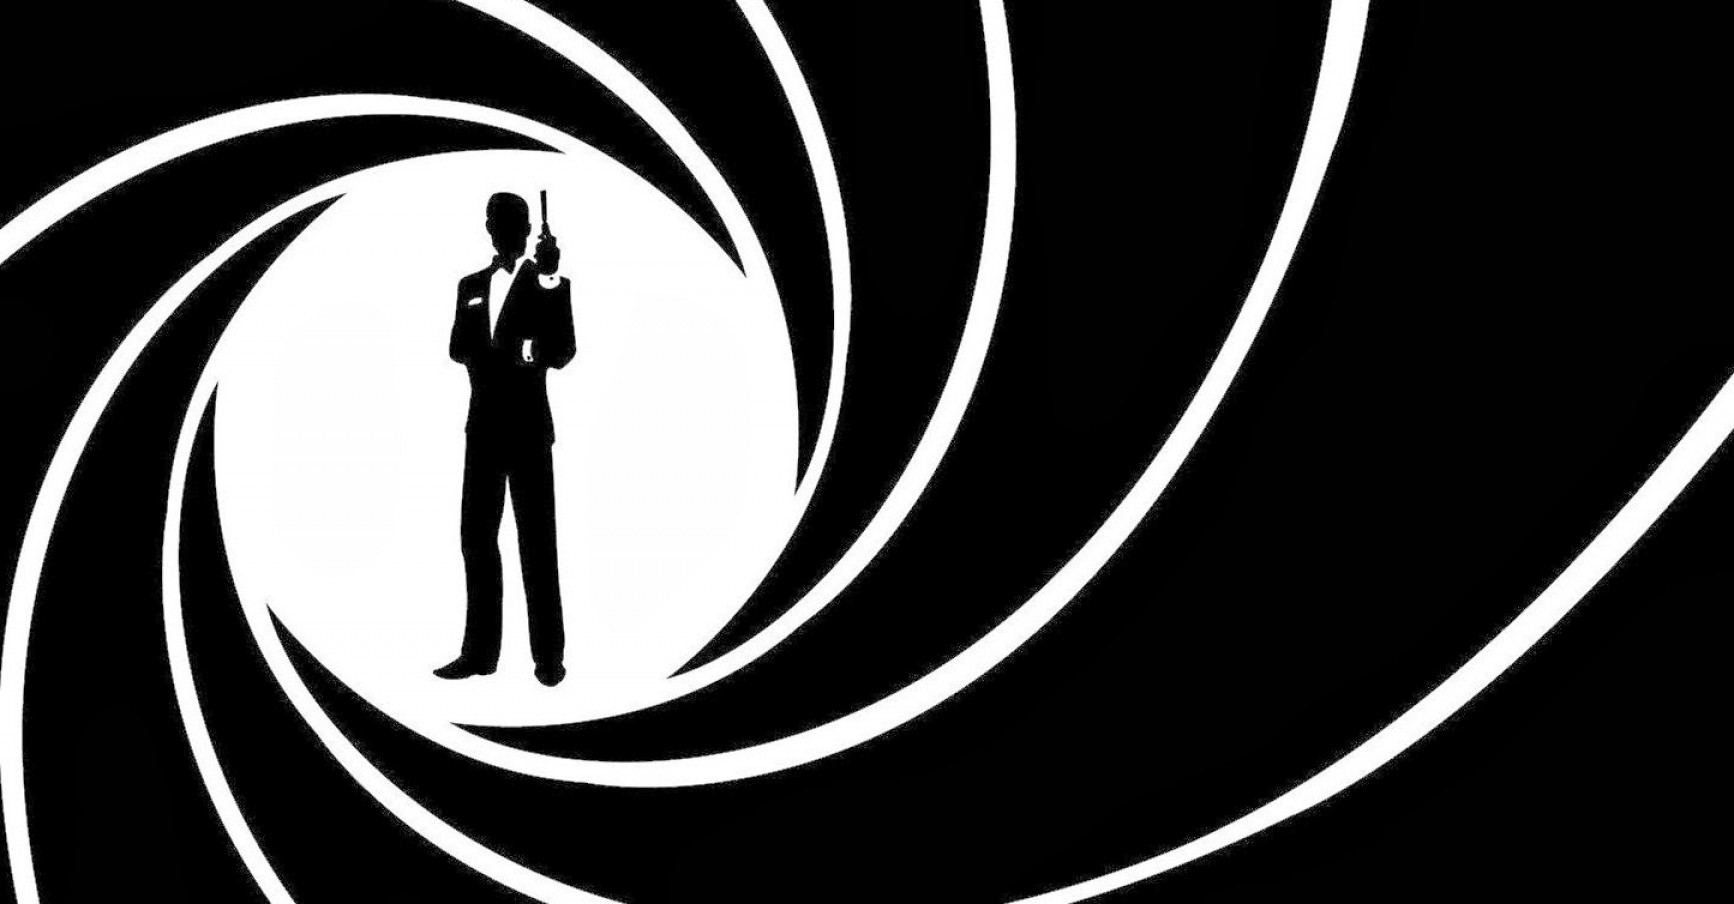 James Bond Logo Vector: Daily Podcast Who Should Direct Bond Should Blumhouse Reboot The Dark Universe Kevin Smith Star Wars Mr Robot